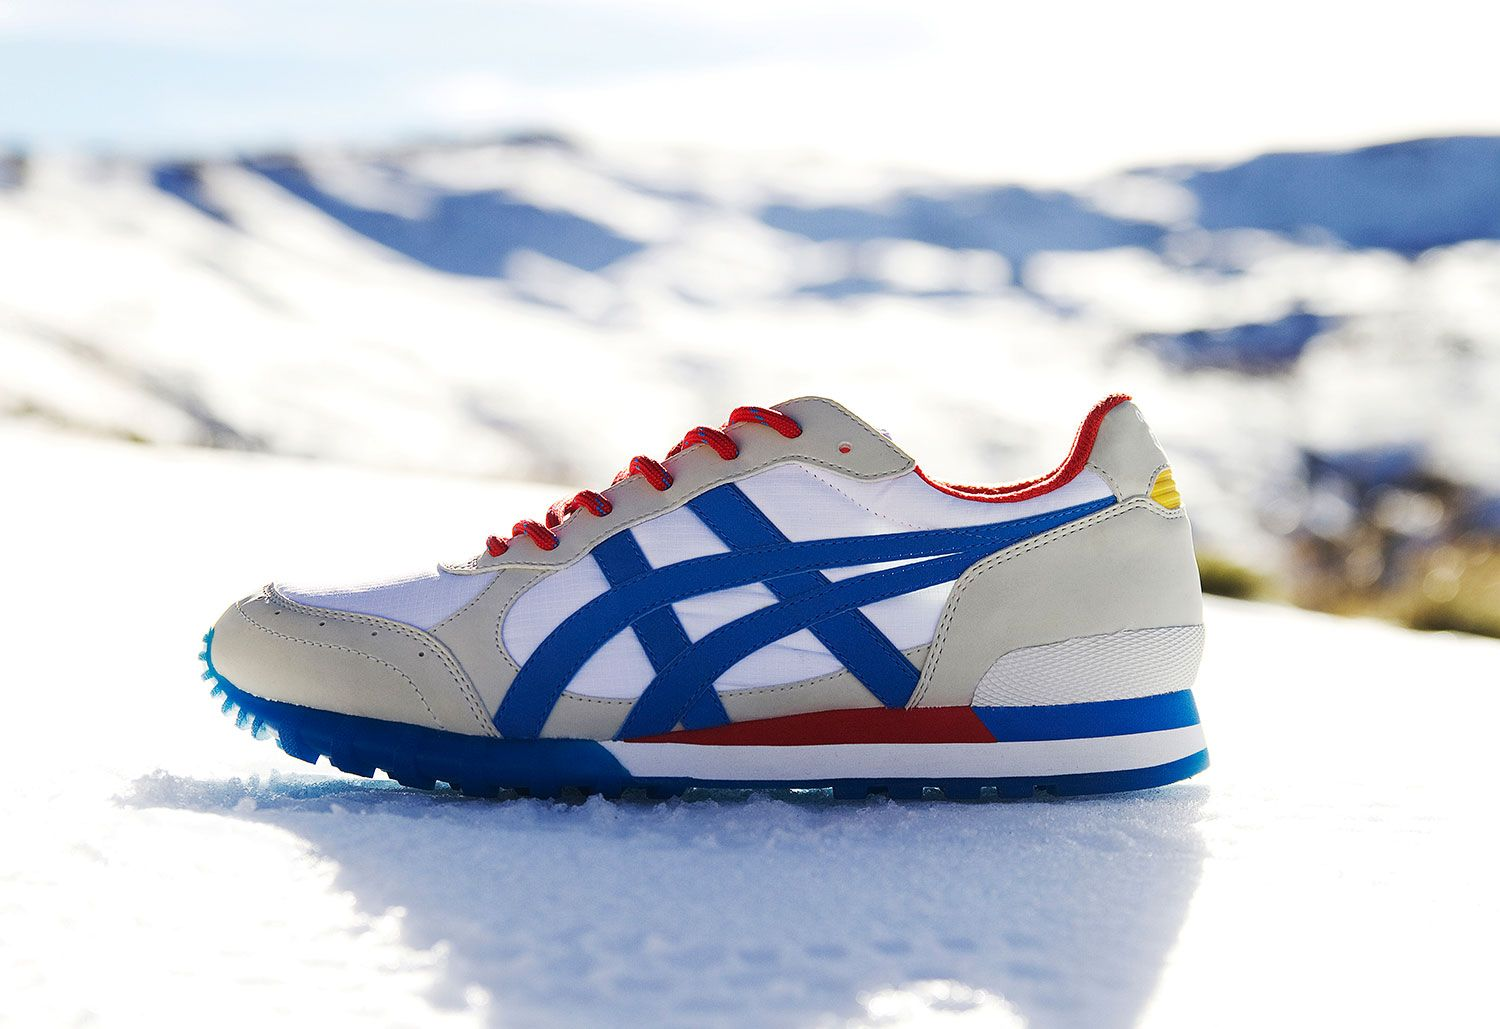 Onitsuka Tiger X Bait By Akomplice 6 200 Ft Profile